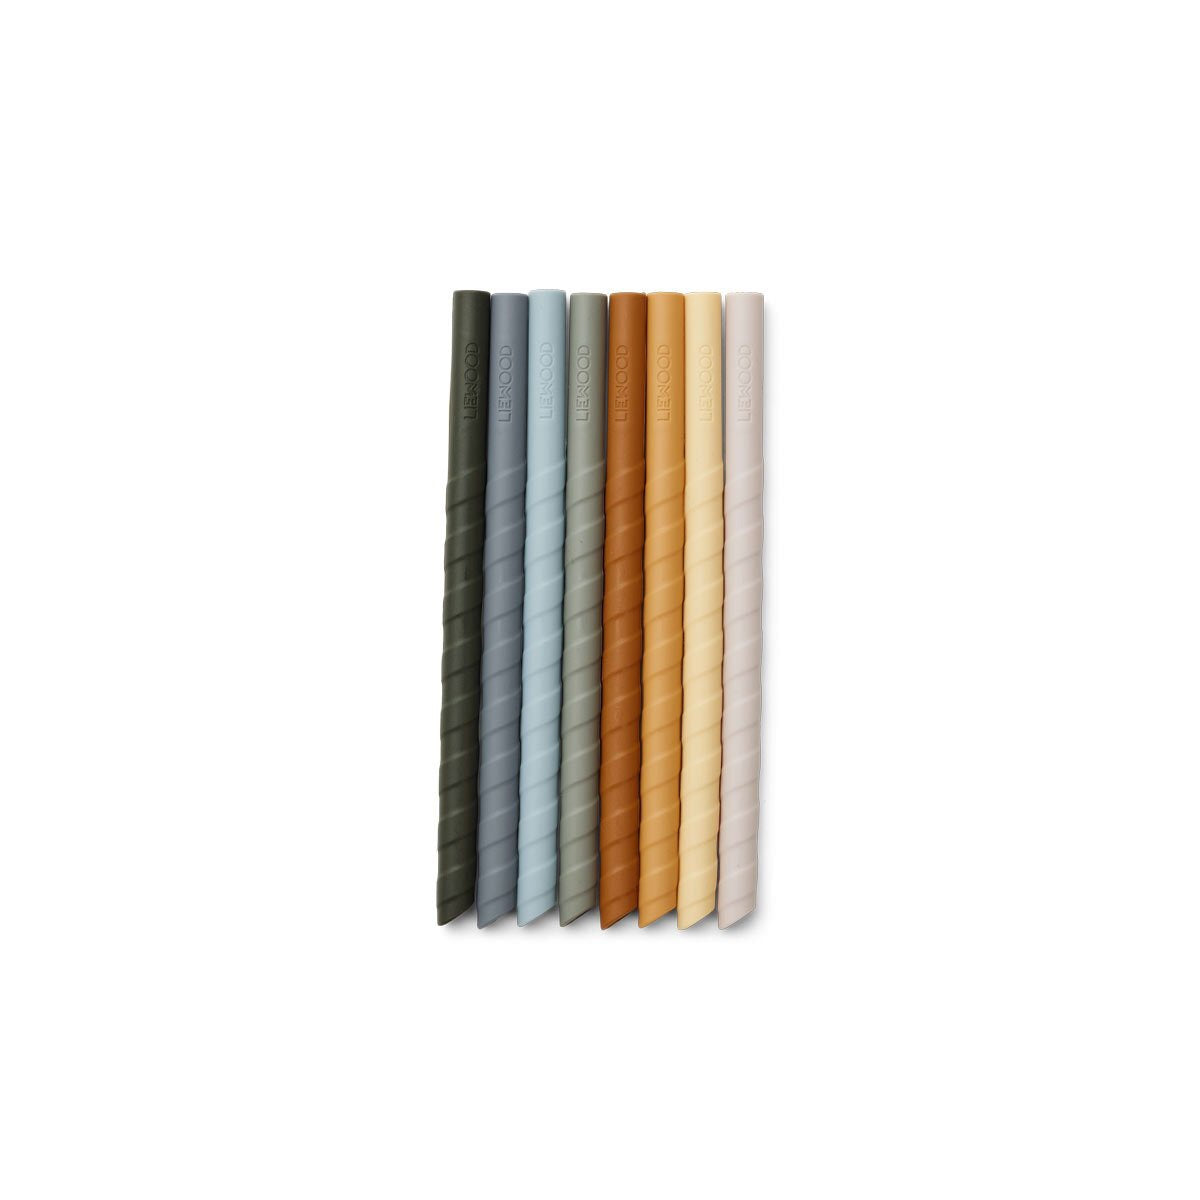 (pre-order) zoe straw set / 8pack - blue multi mix 藍色環保矽膠吸管套裝(8件裝)